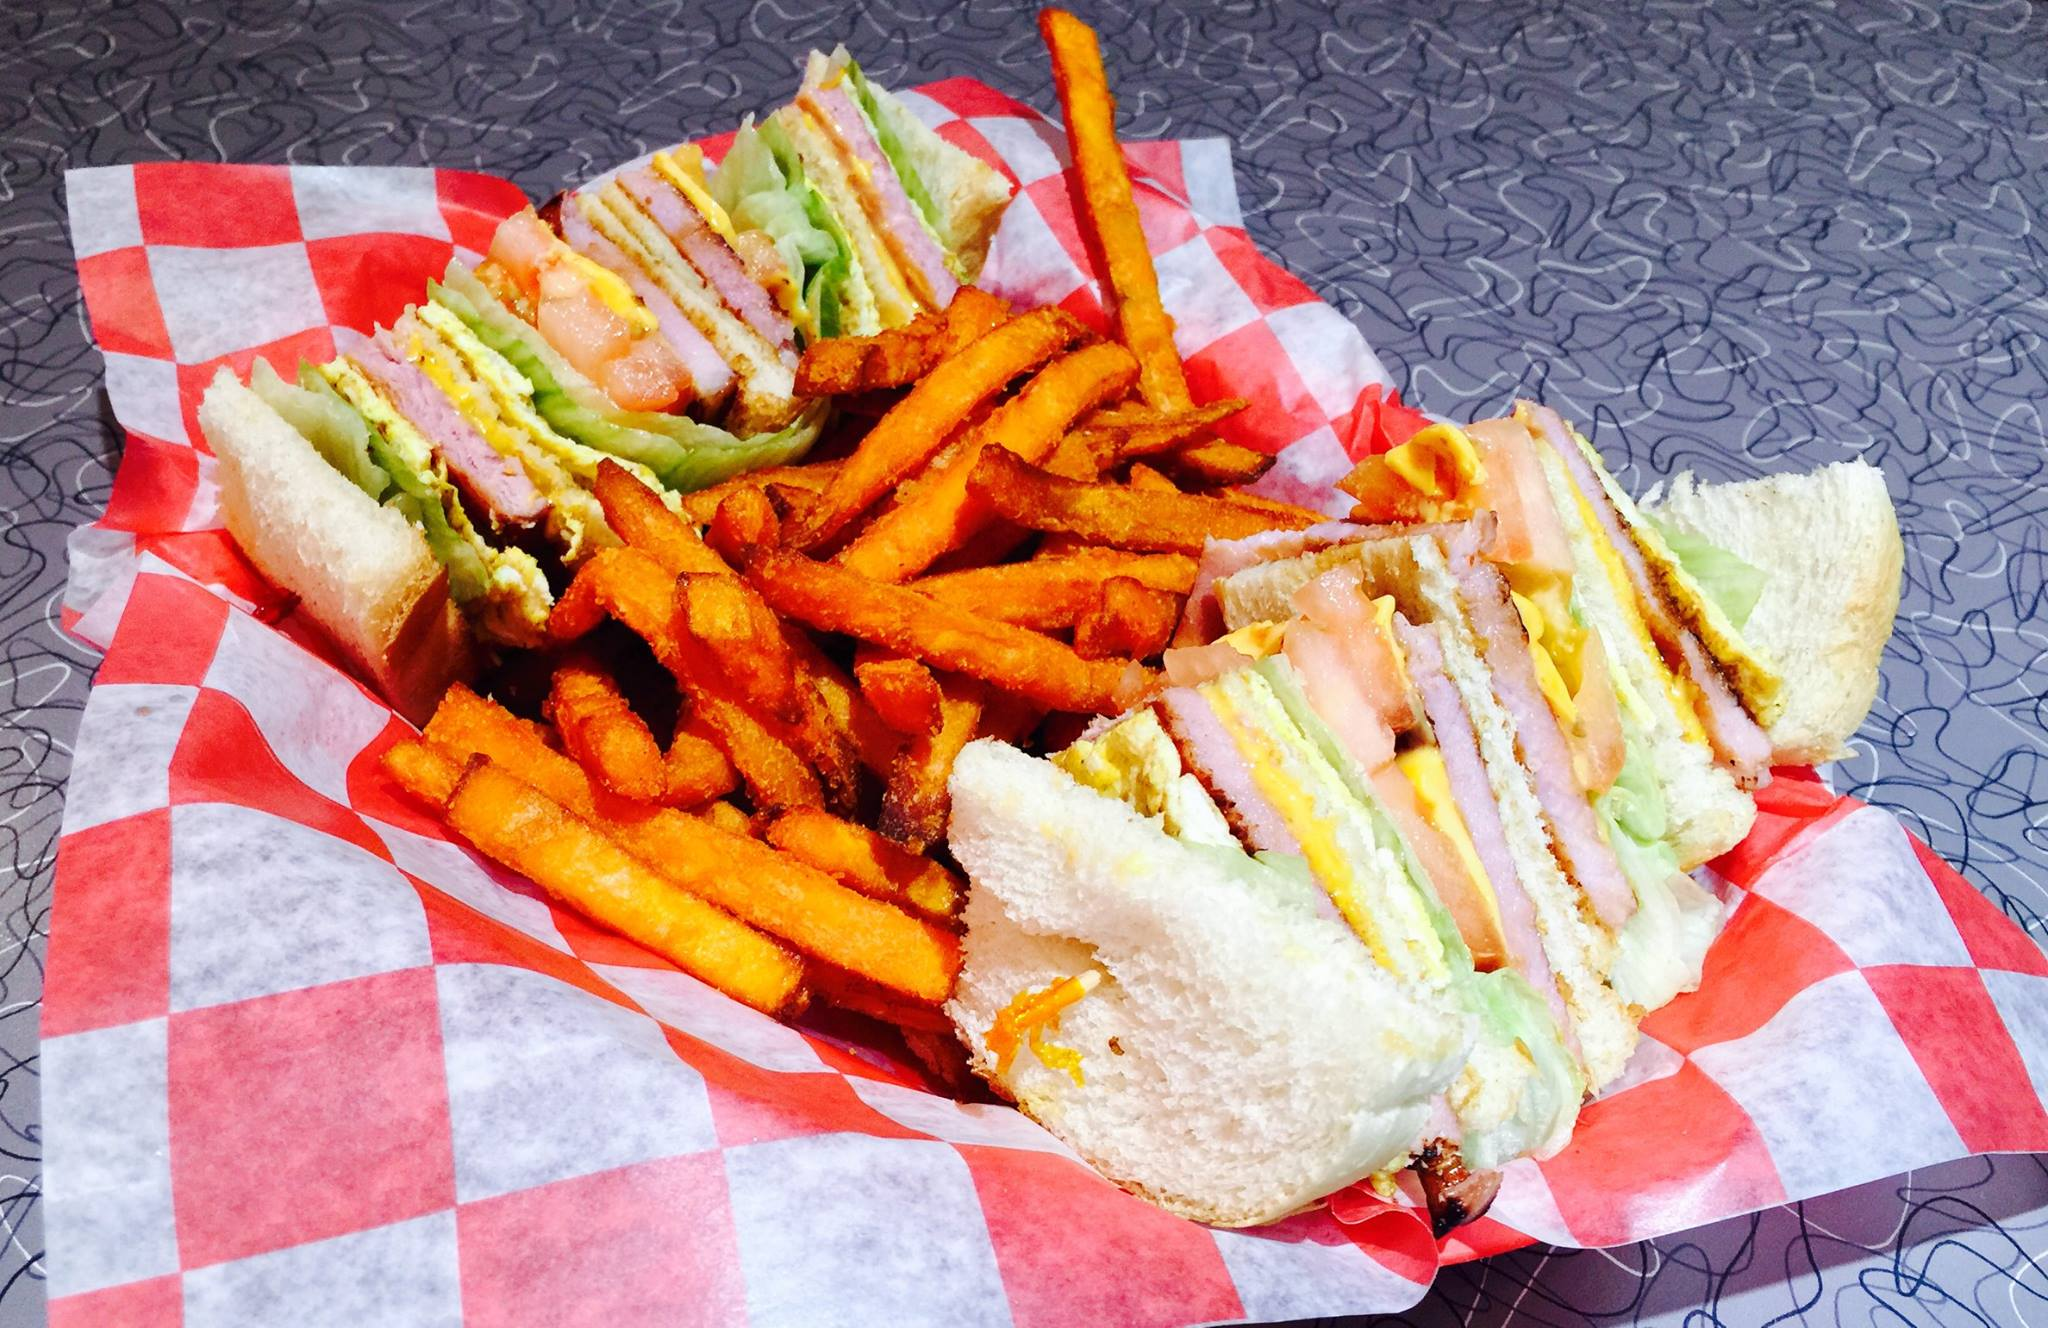 Sandwich with sweet potato fries